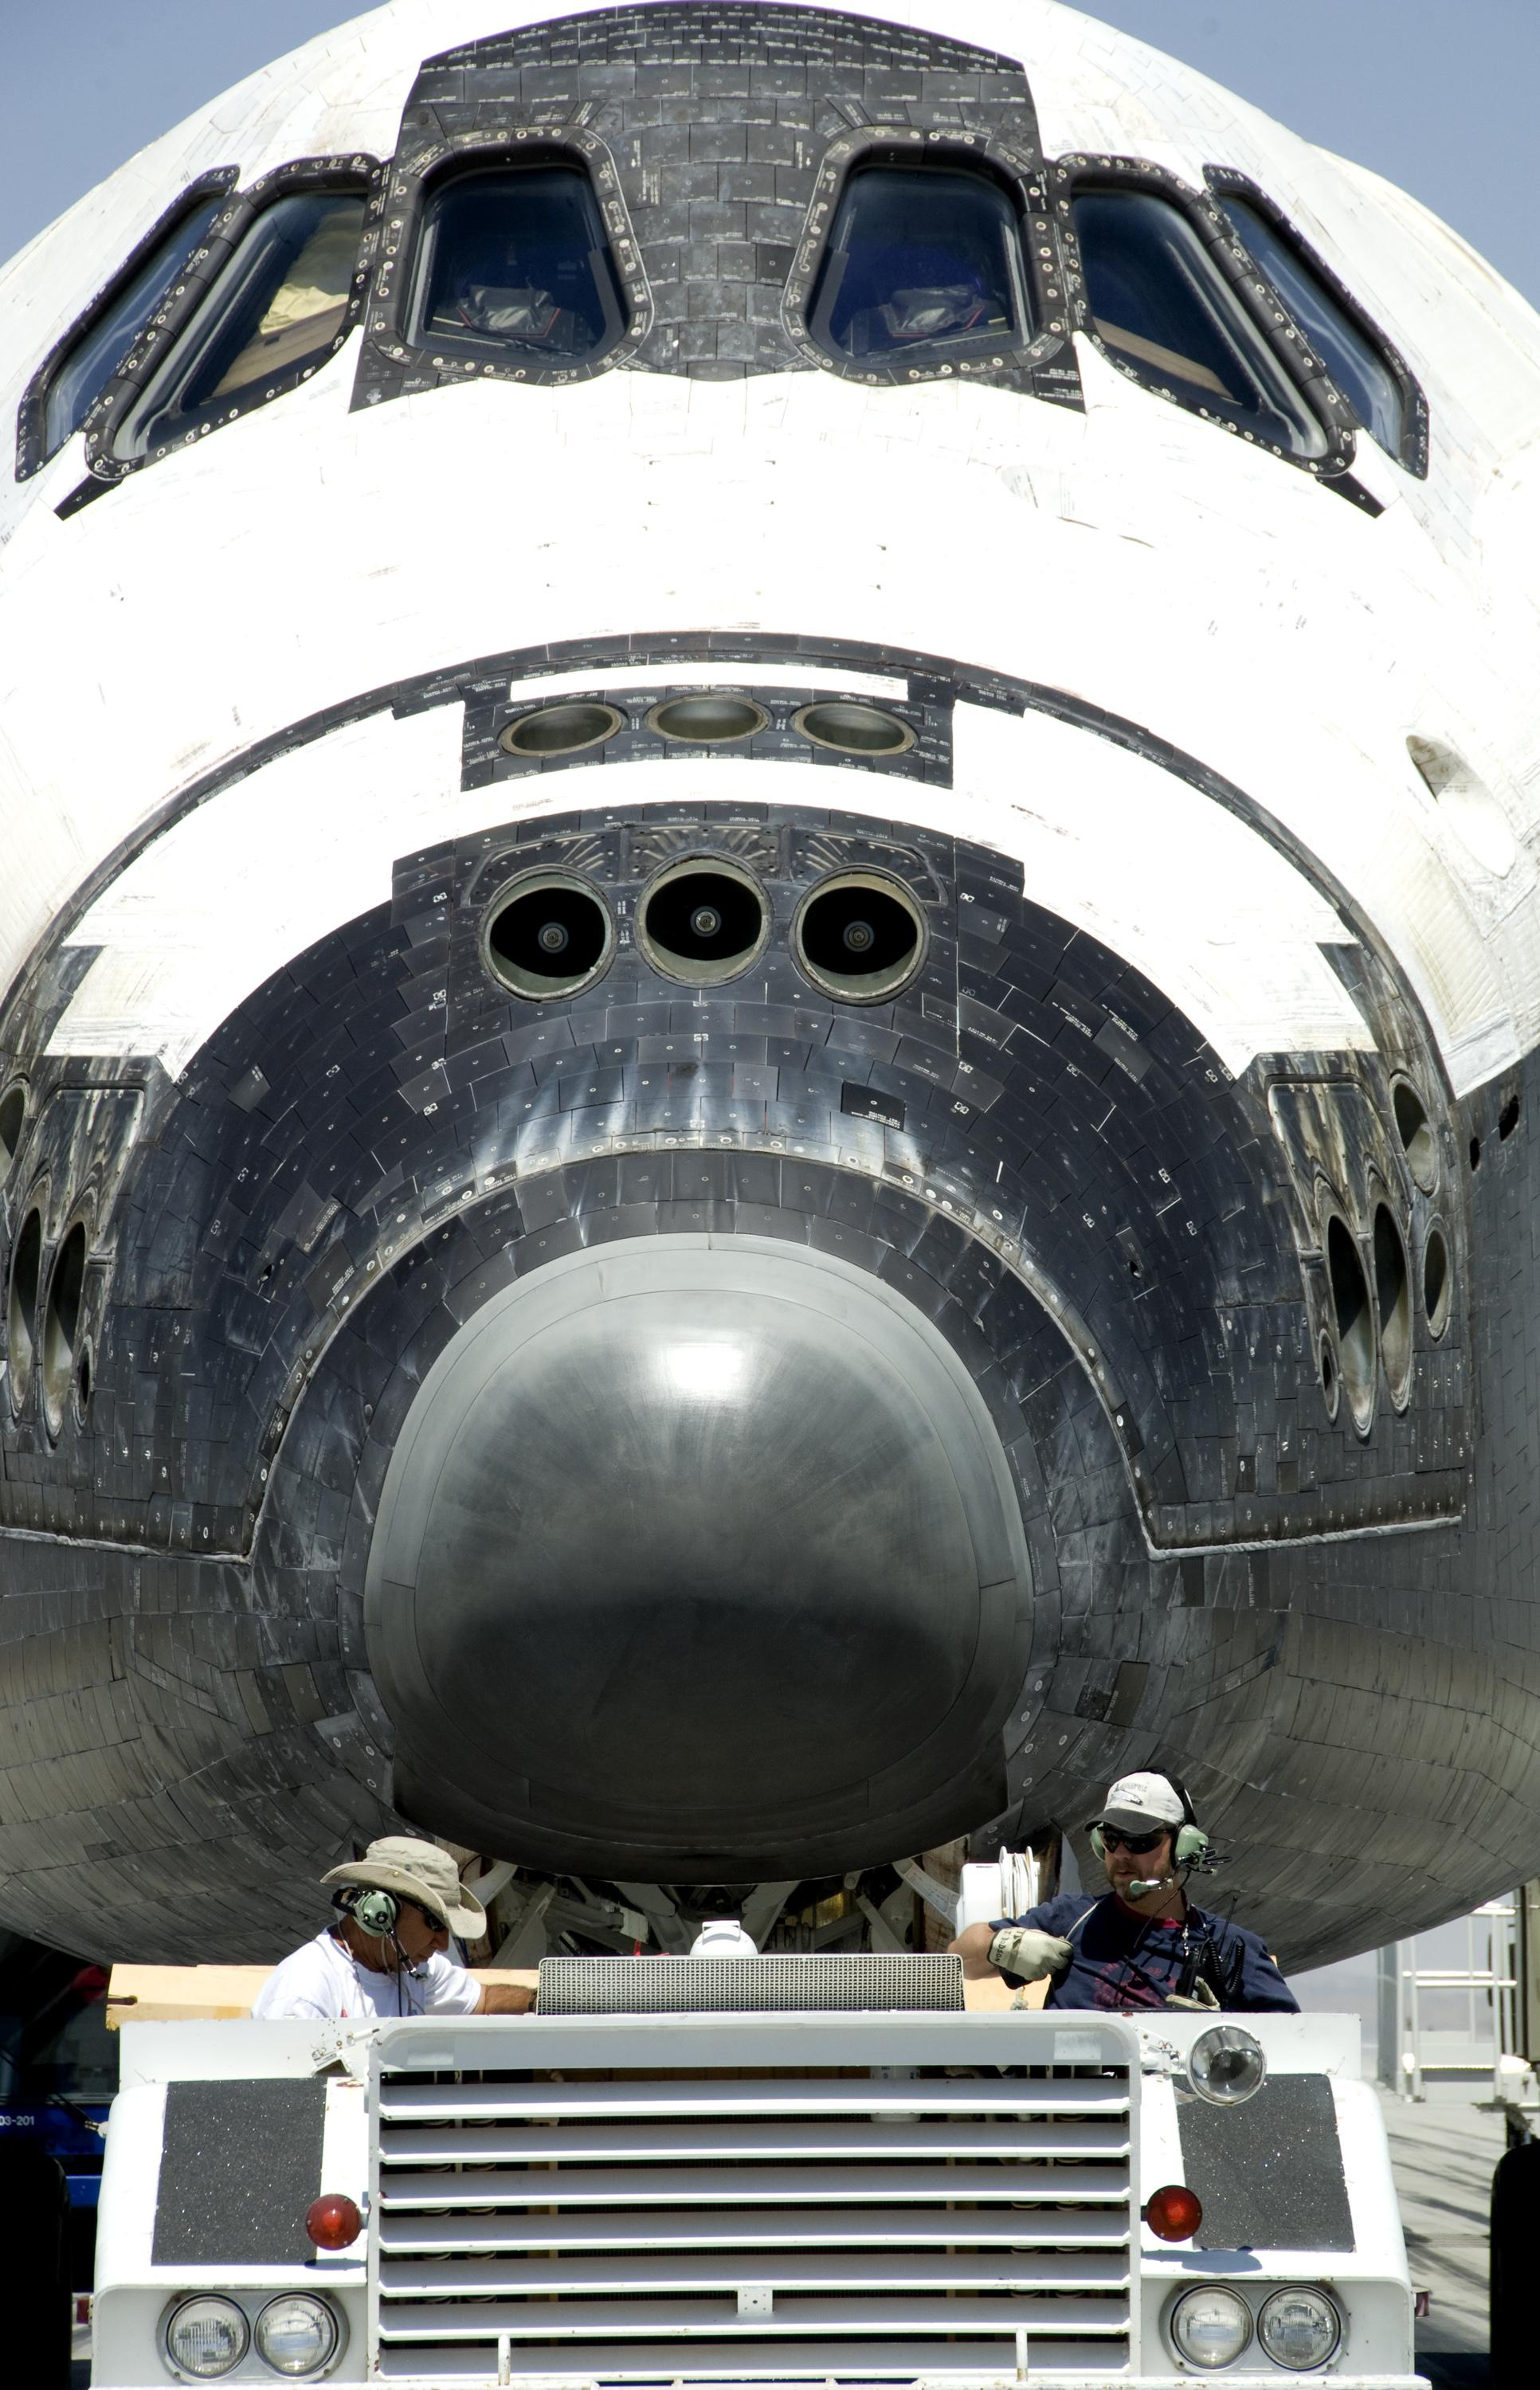 space shuttle nose - photo #17